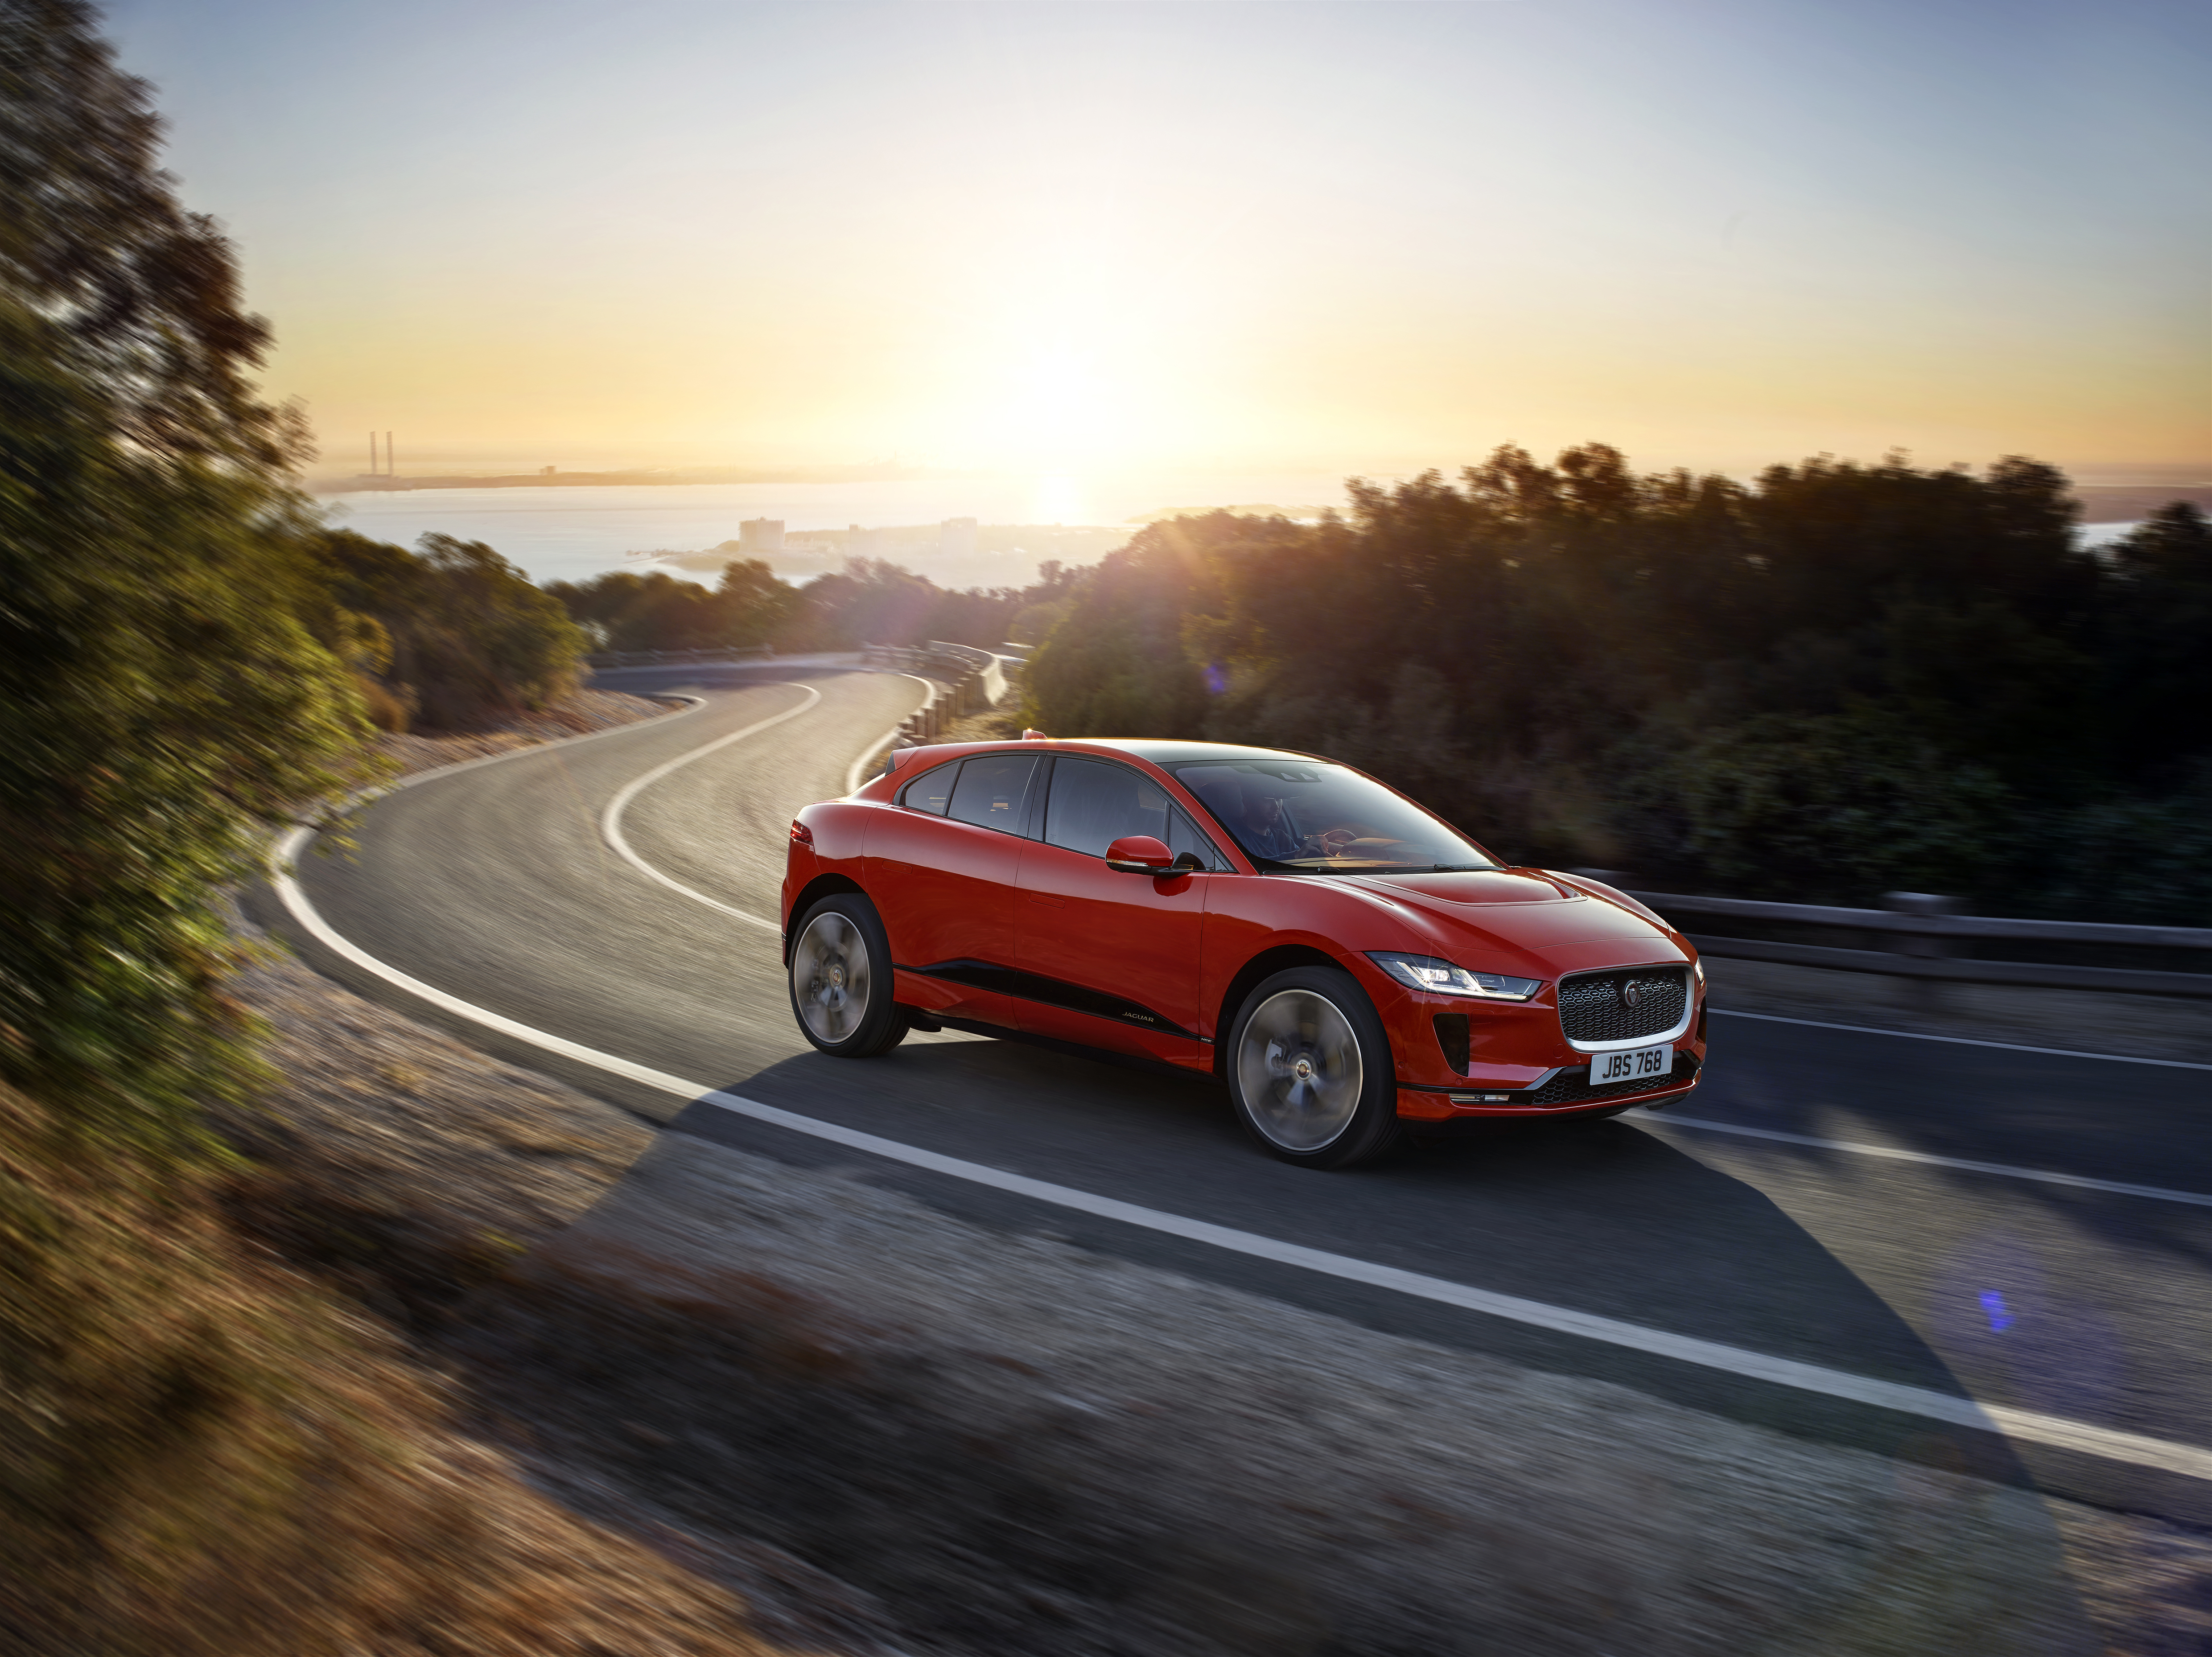 jaguar preview in xq type new c colors largest suv image resolution to photos click open